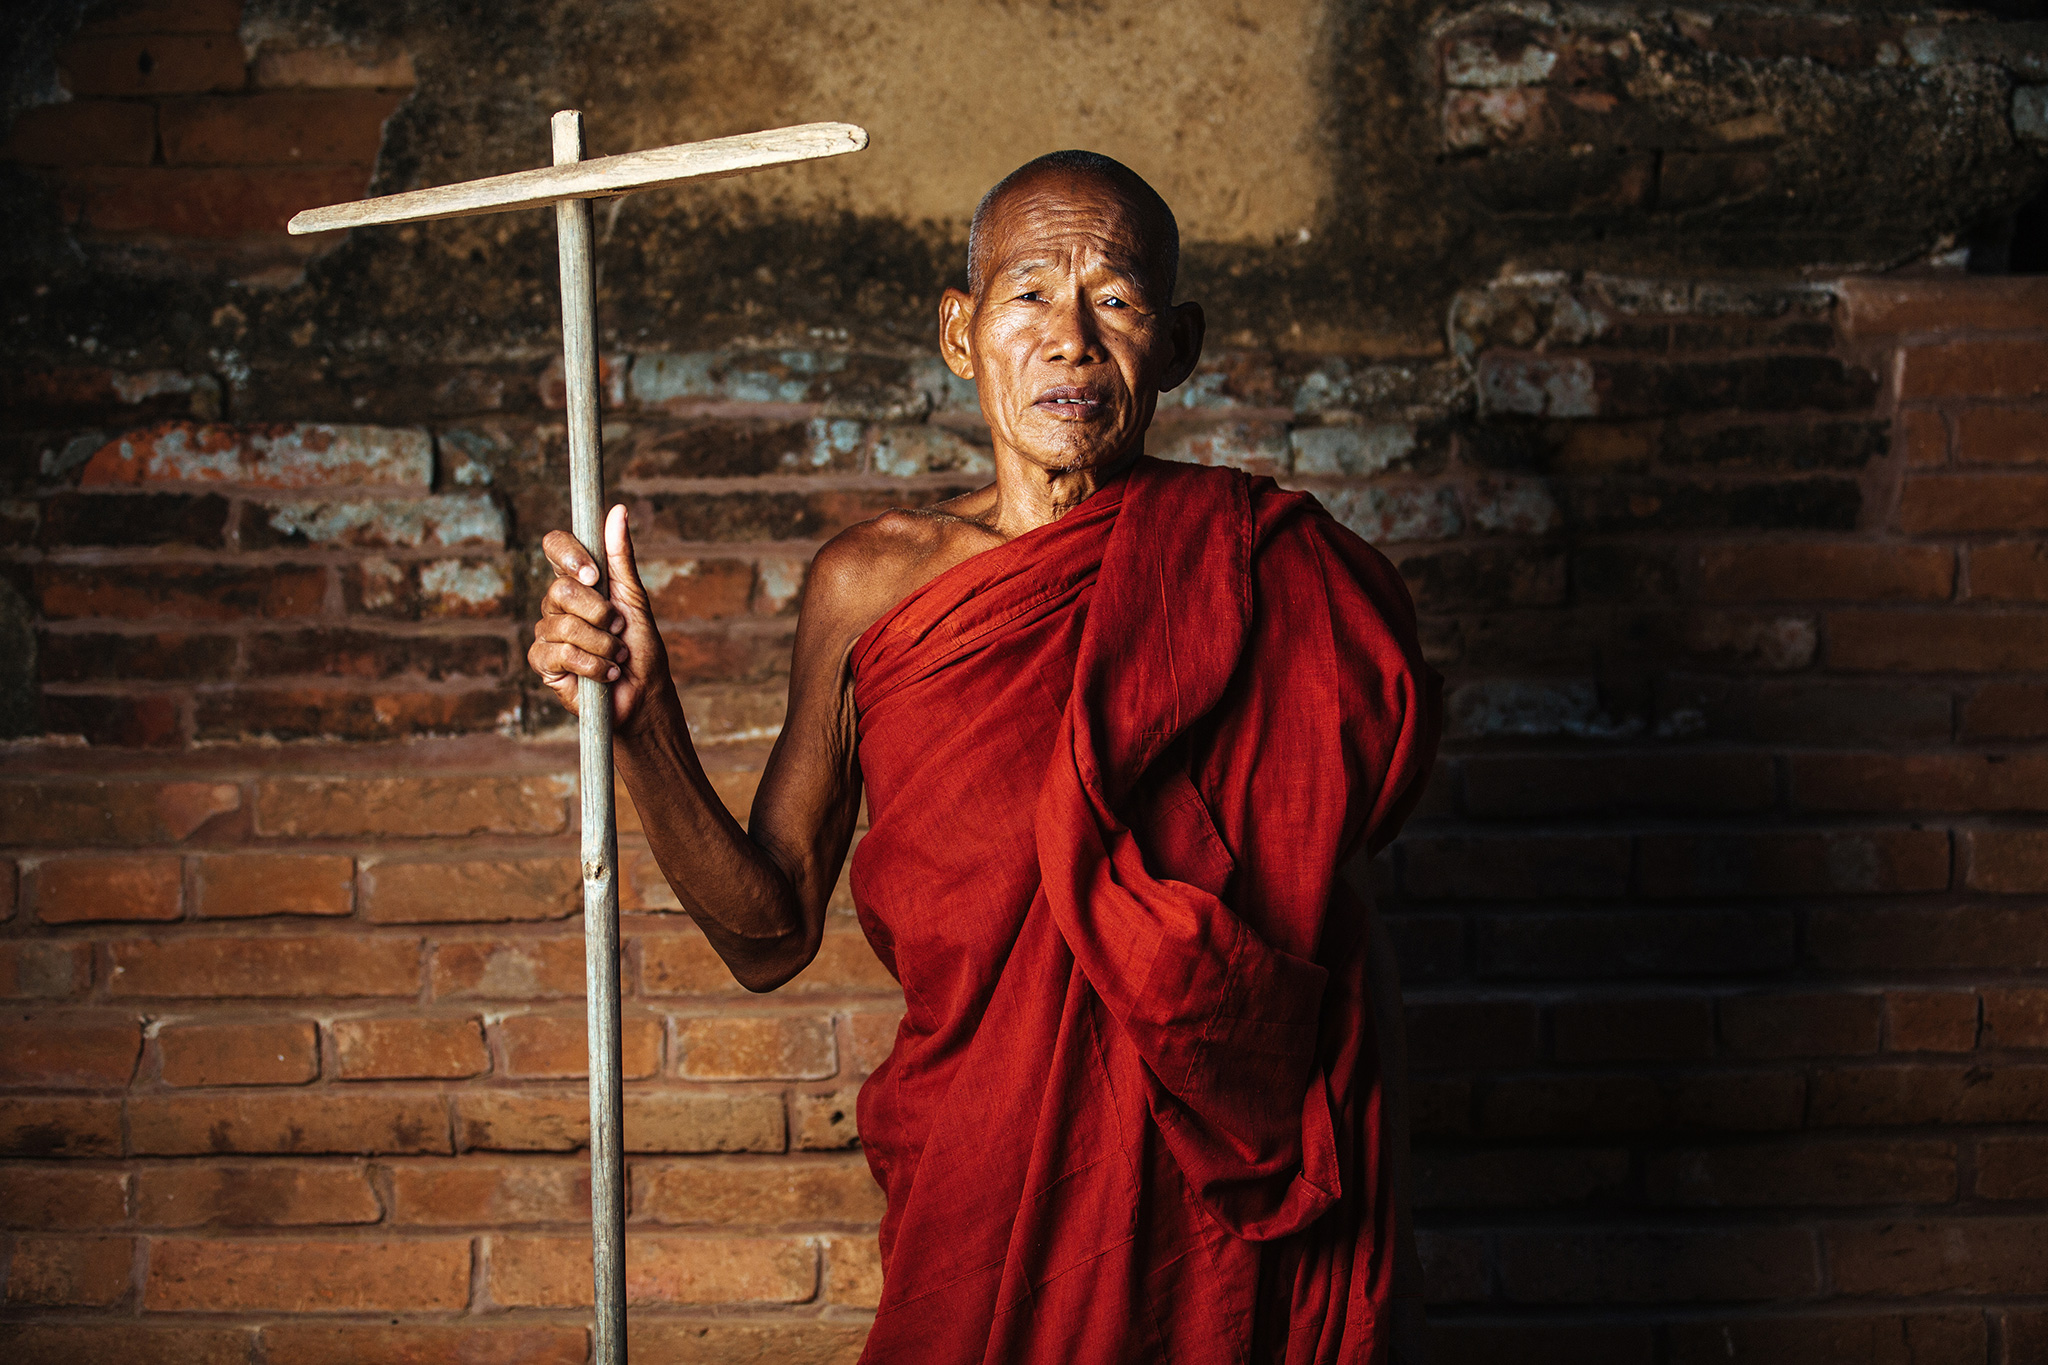 A monk who happens to be raking the floors of the compound turned out to be one of my test subjects during this trip.